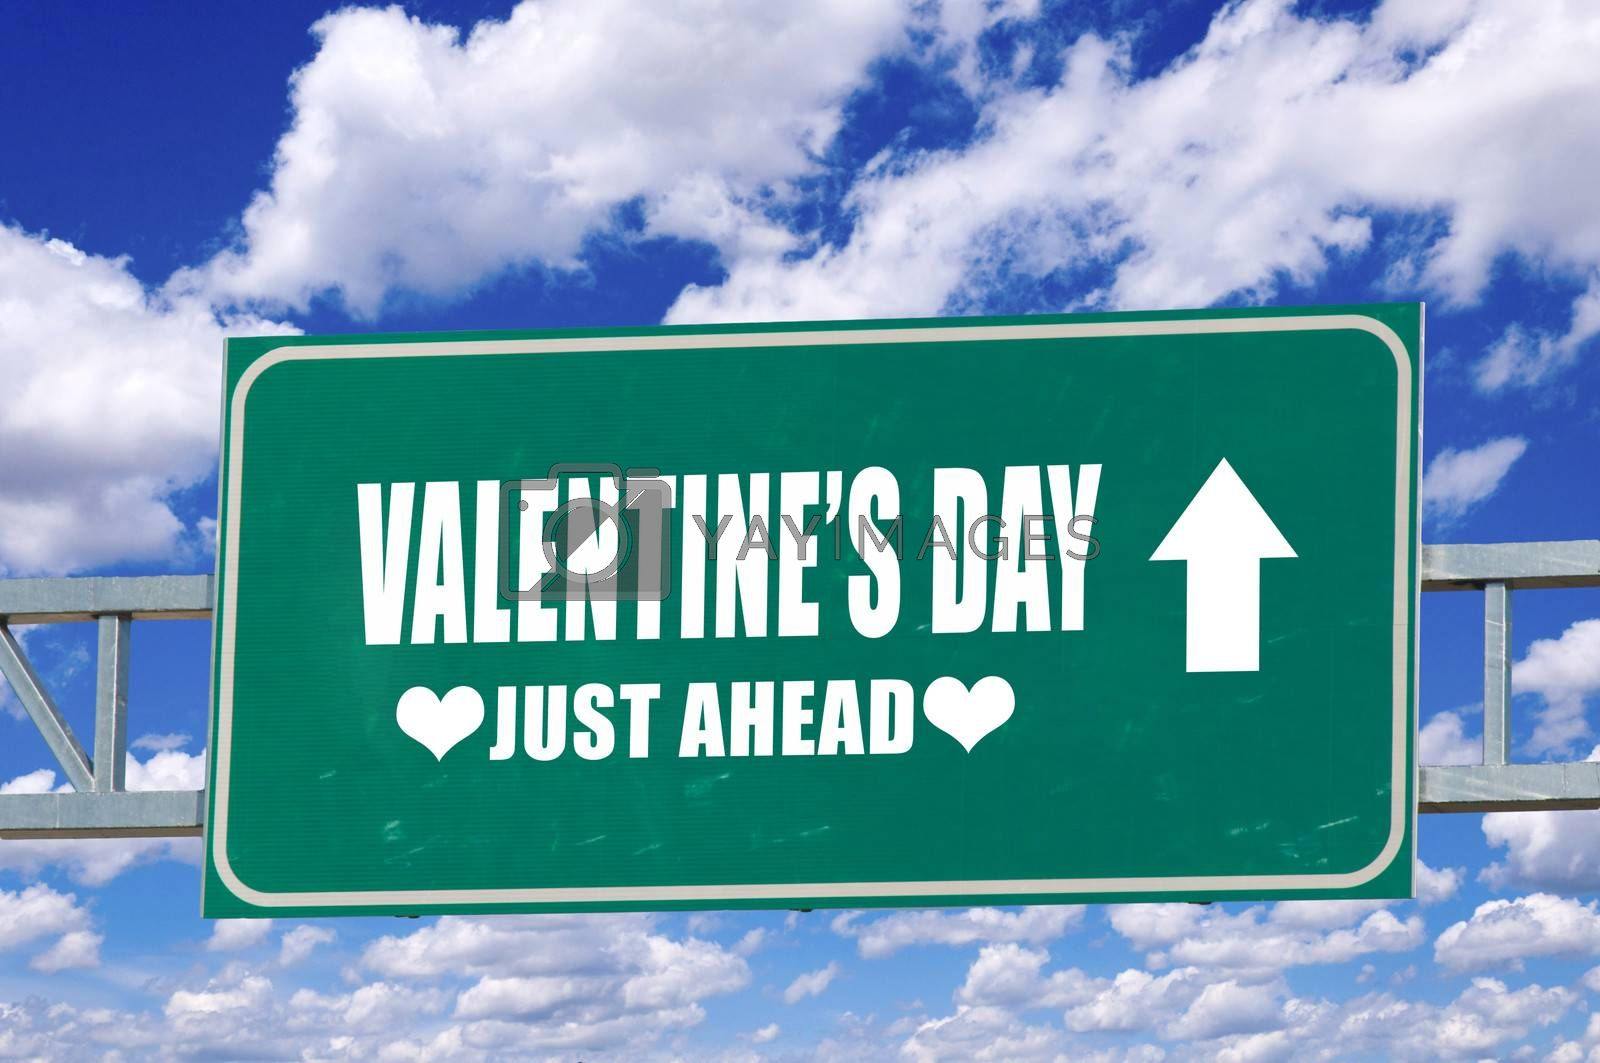 Valentine's day sign on the green board with clouds in background